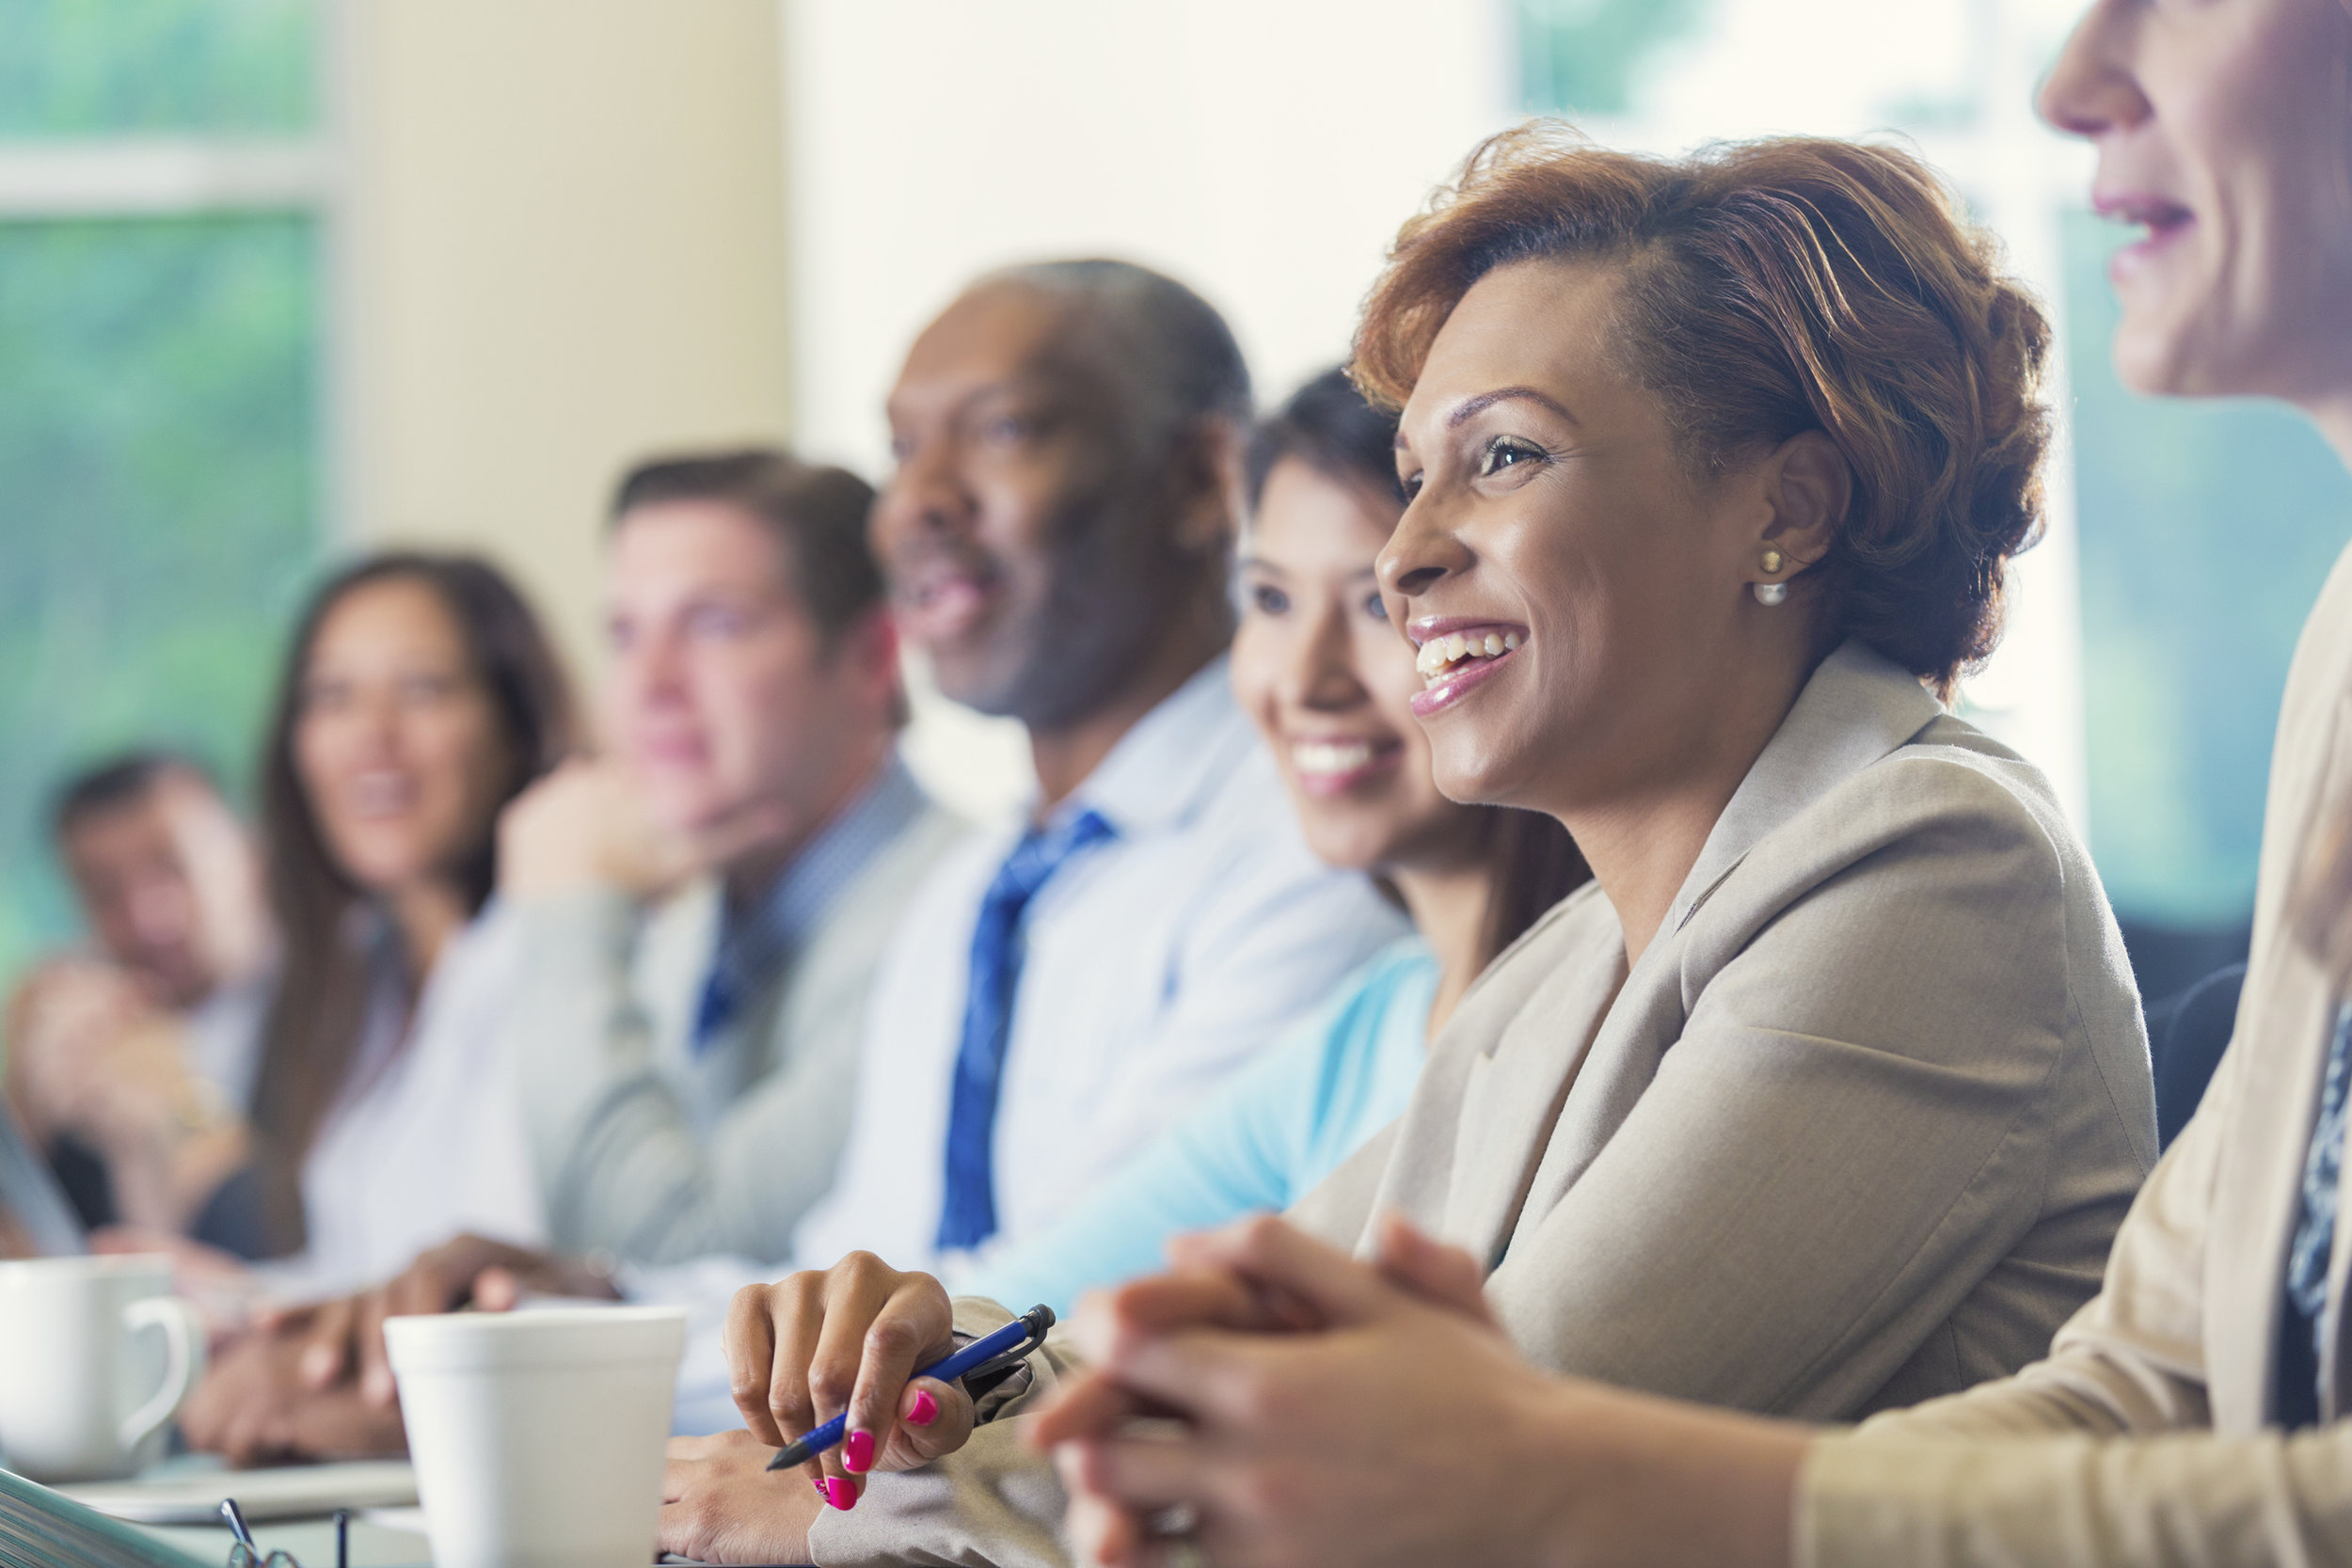 LEARN MORE ABOUT STARTING A PUBLIC SERVICE ACADEMY IN YOUR TOWN, CITY OR STATE